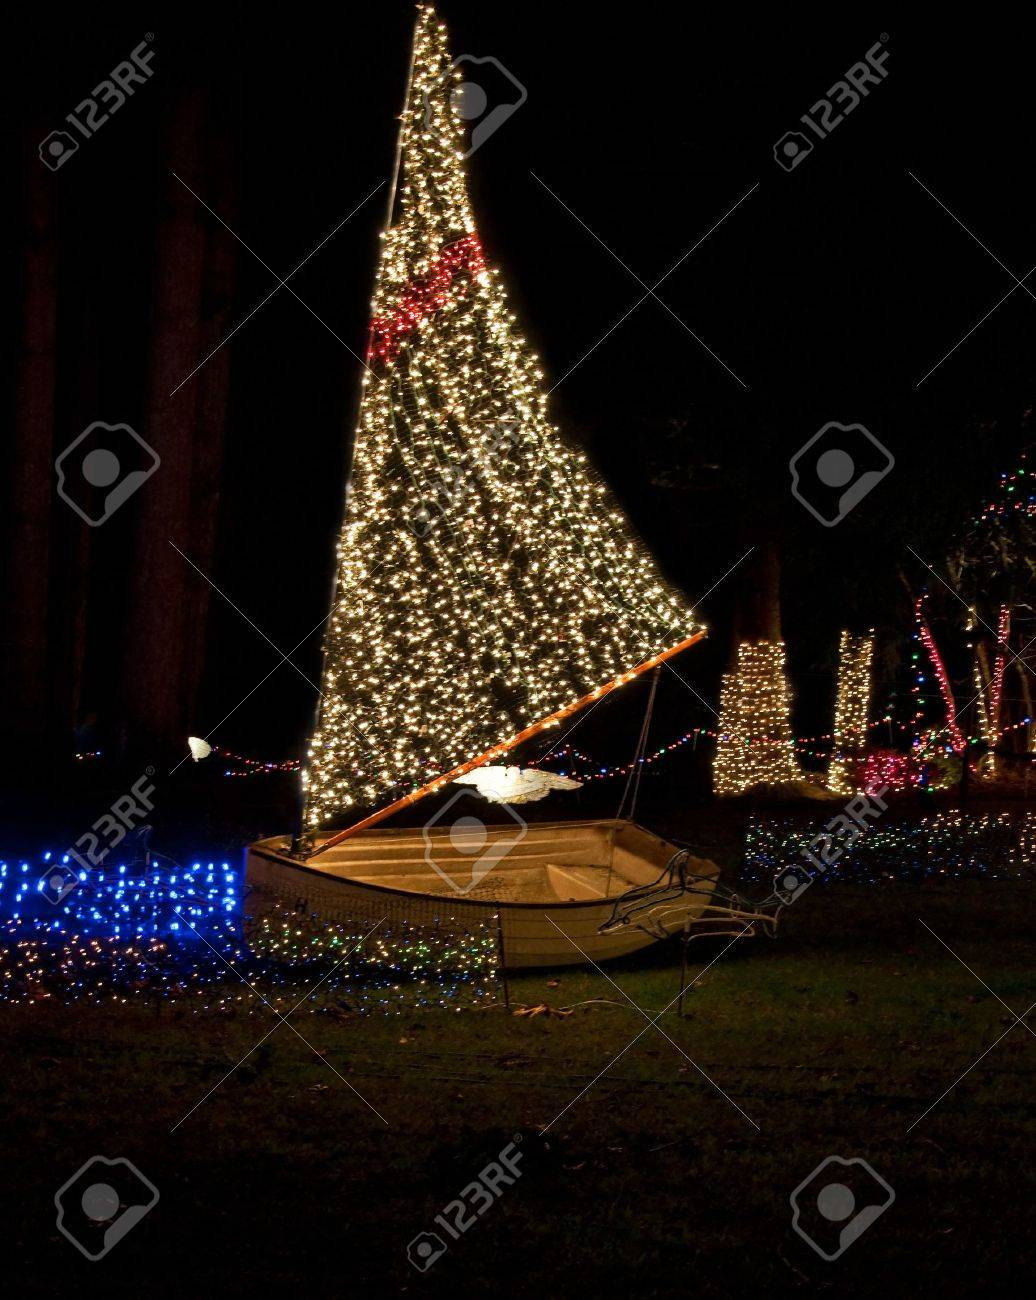 This Vertical Holiday Image Is A Sailboat With Christmas Lights At Night  For A Holiday Display